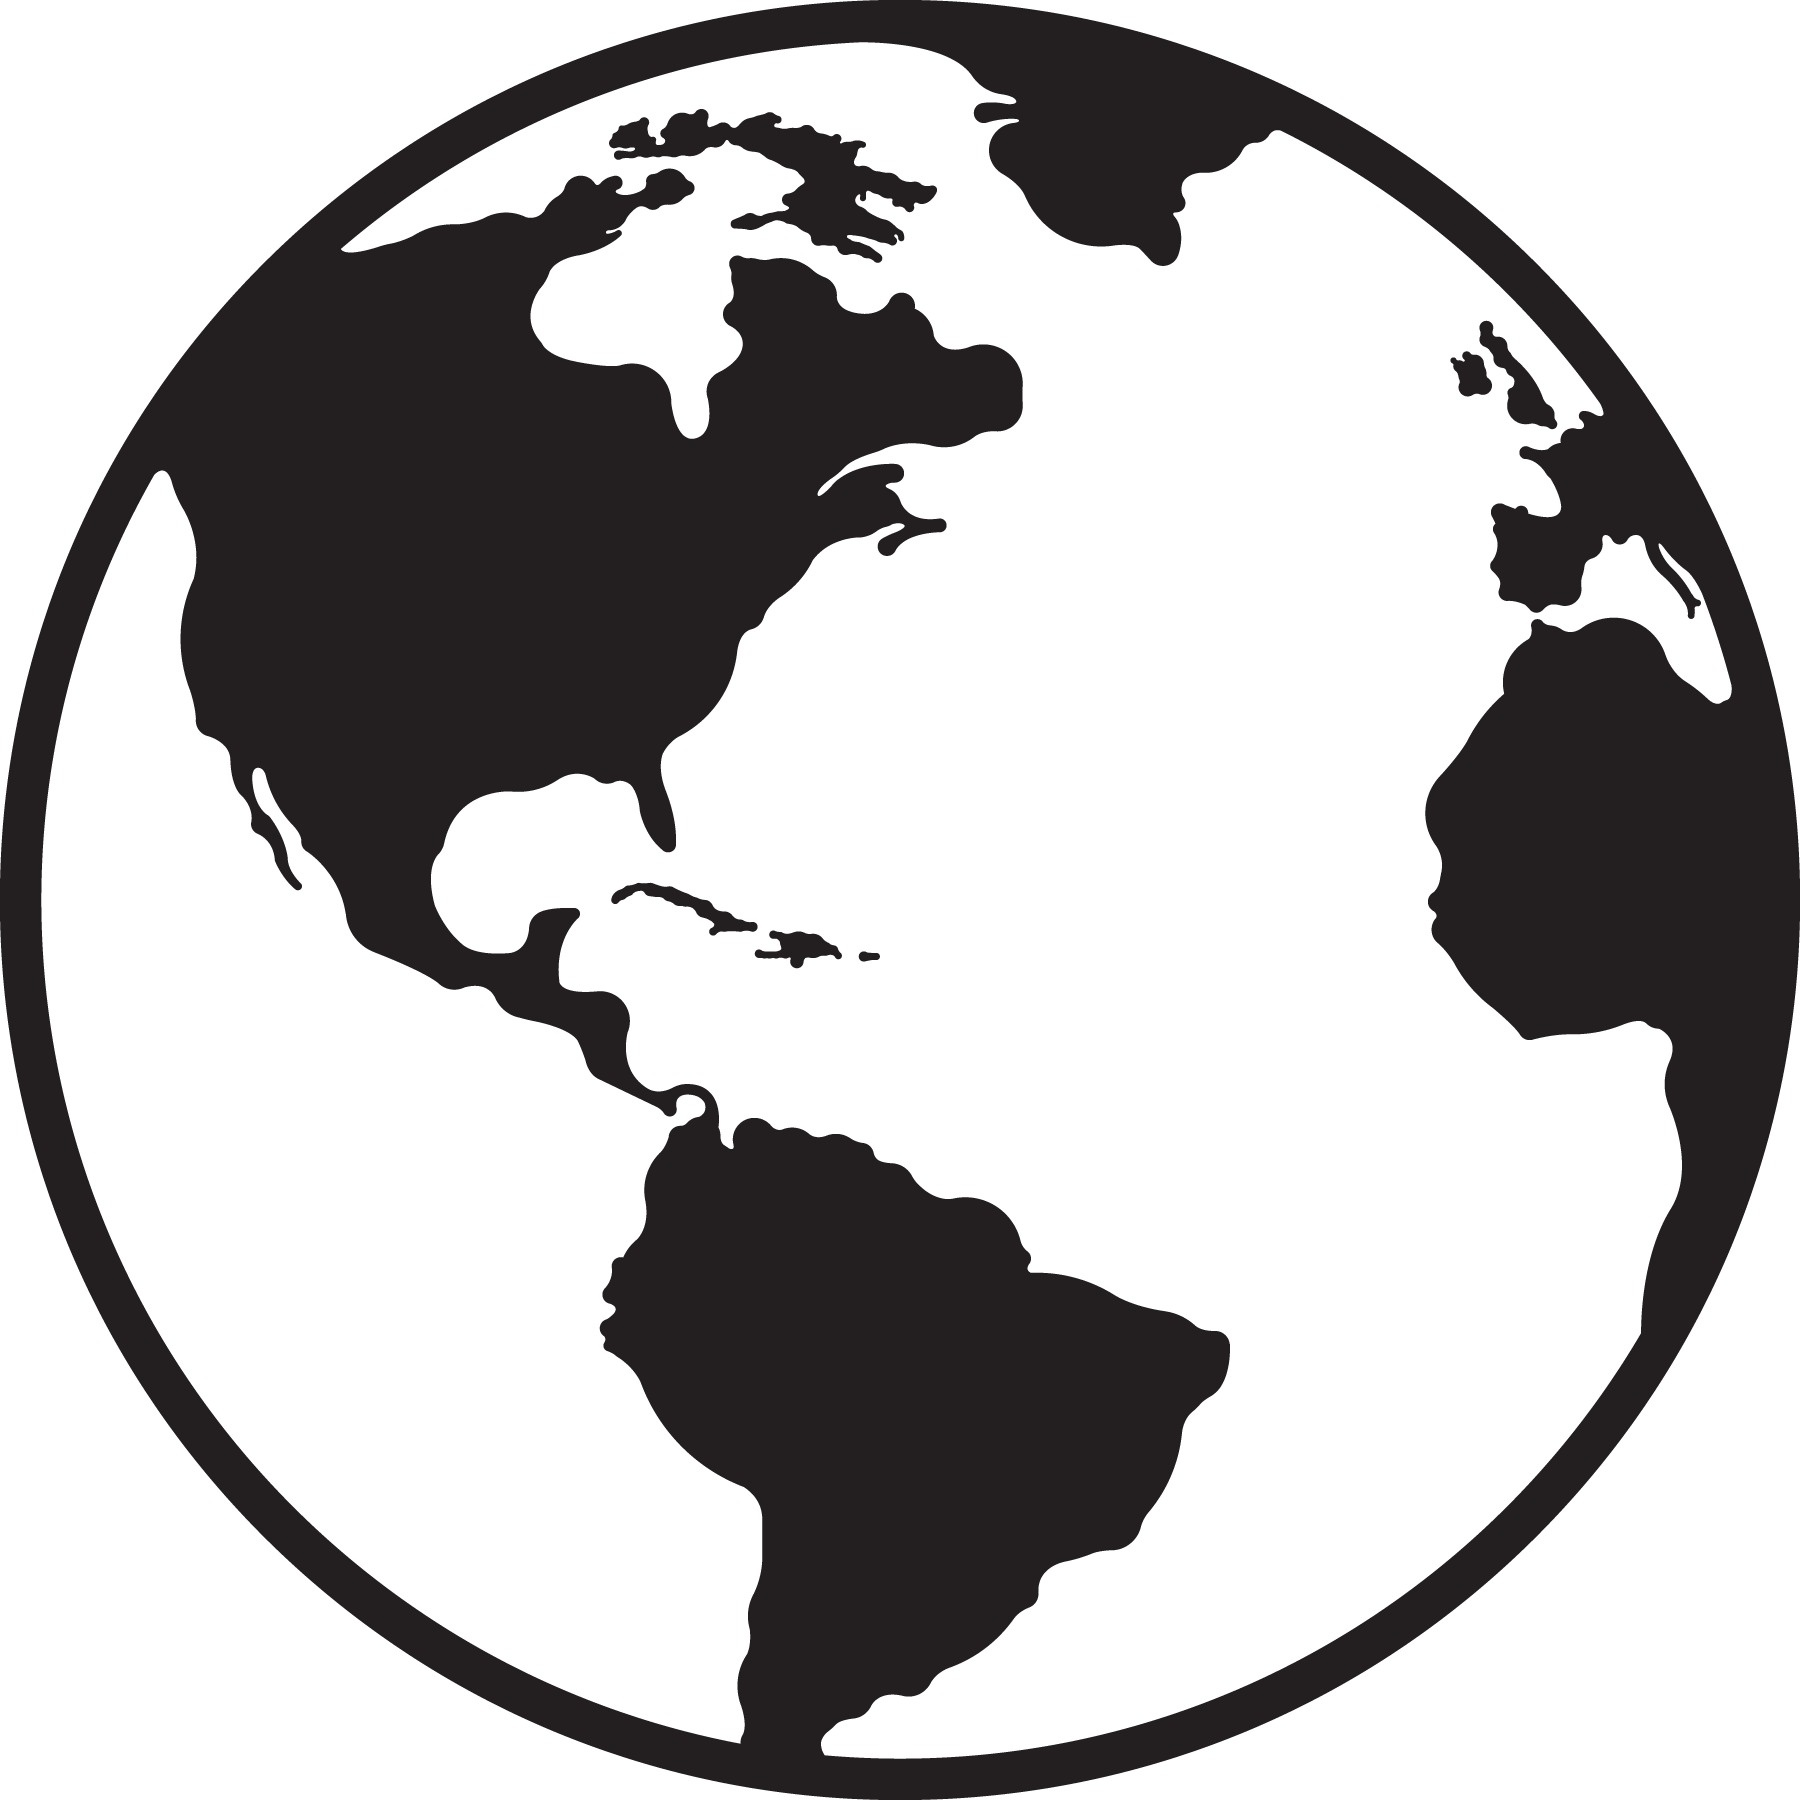 fresh-inspiration-globe-clipart-black-and-white-letters-format